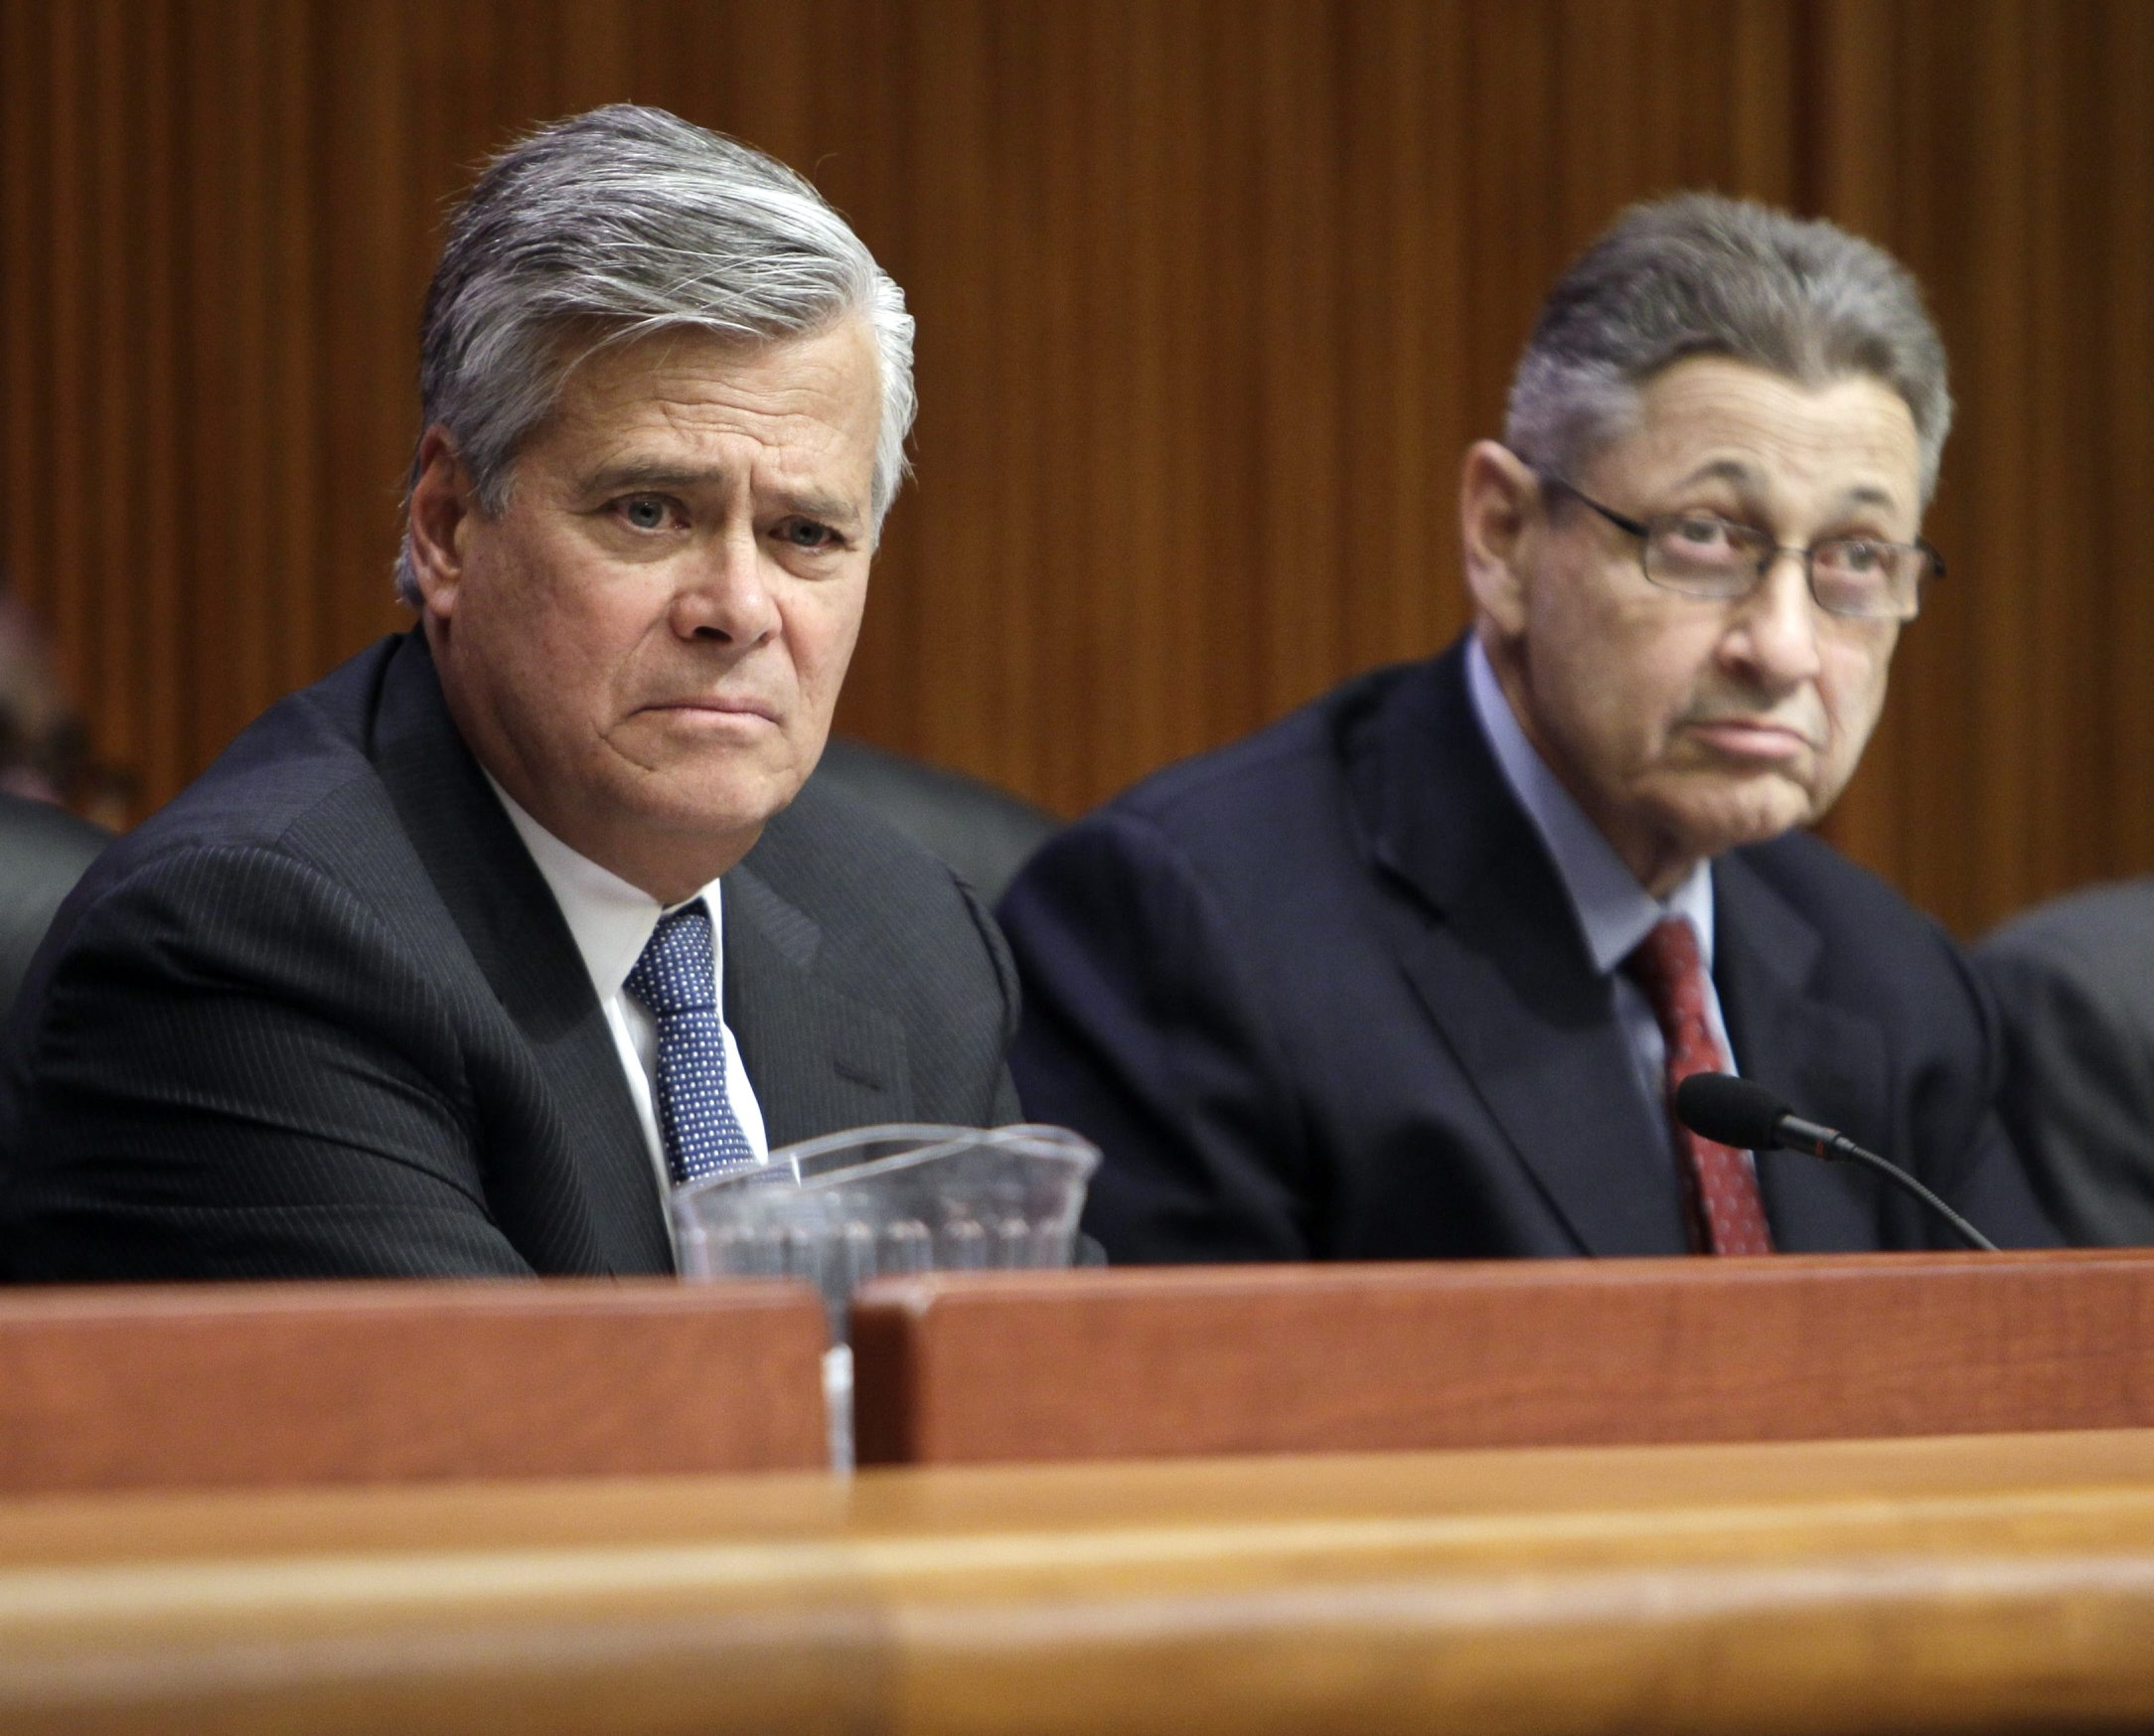 Whether Sen. Dean G. Skelos remains as the majority leader is a taboo topic.